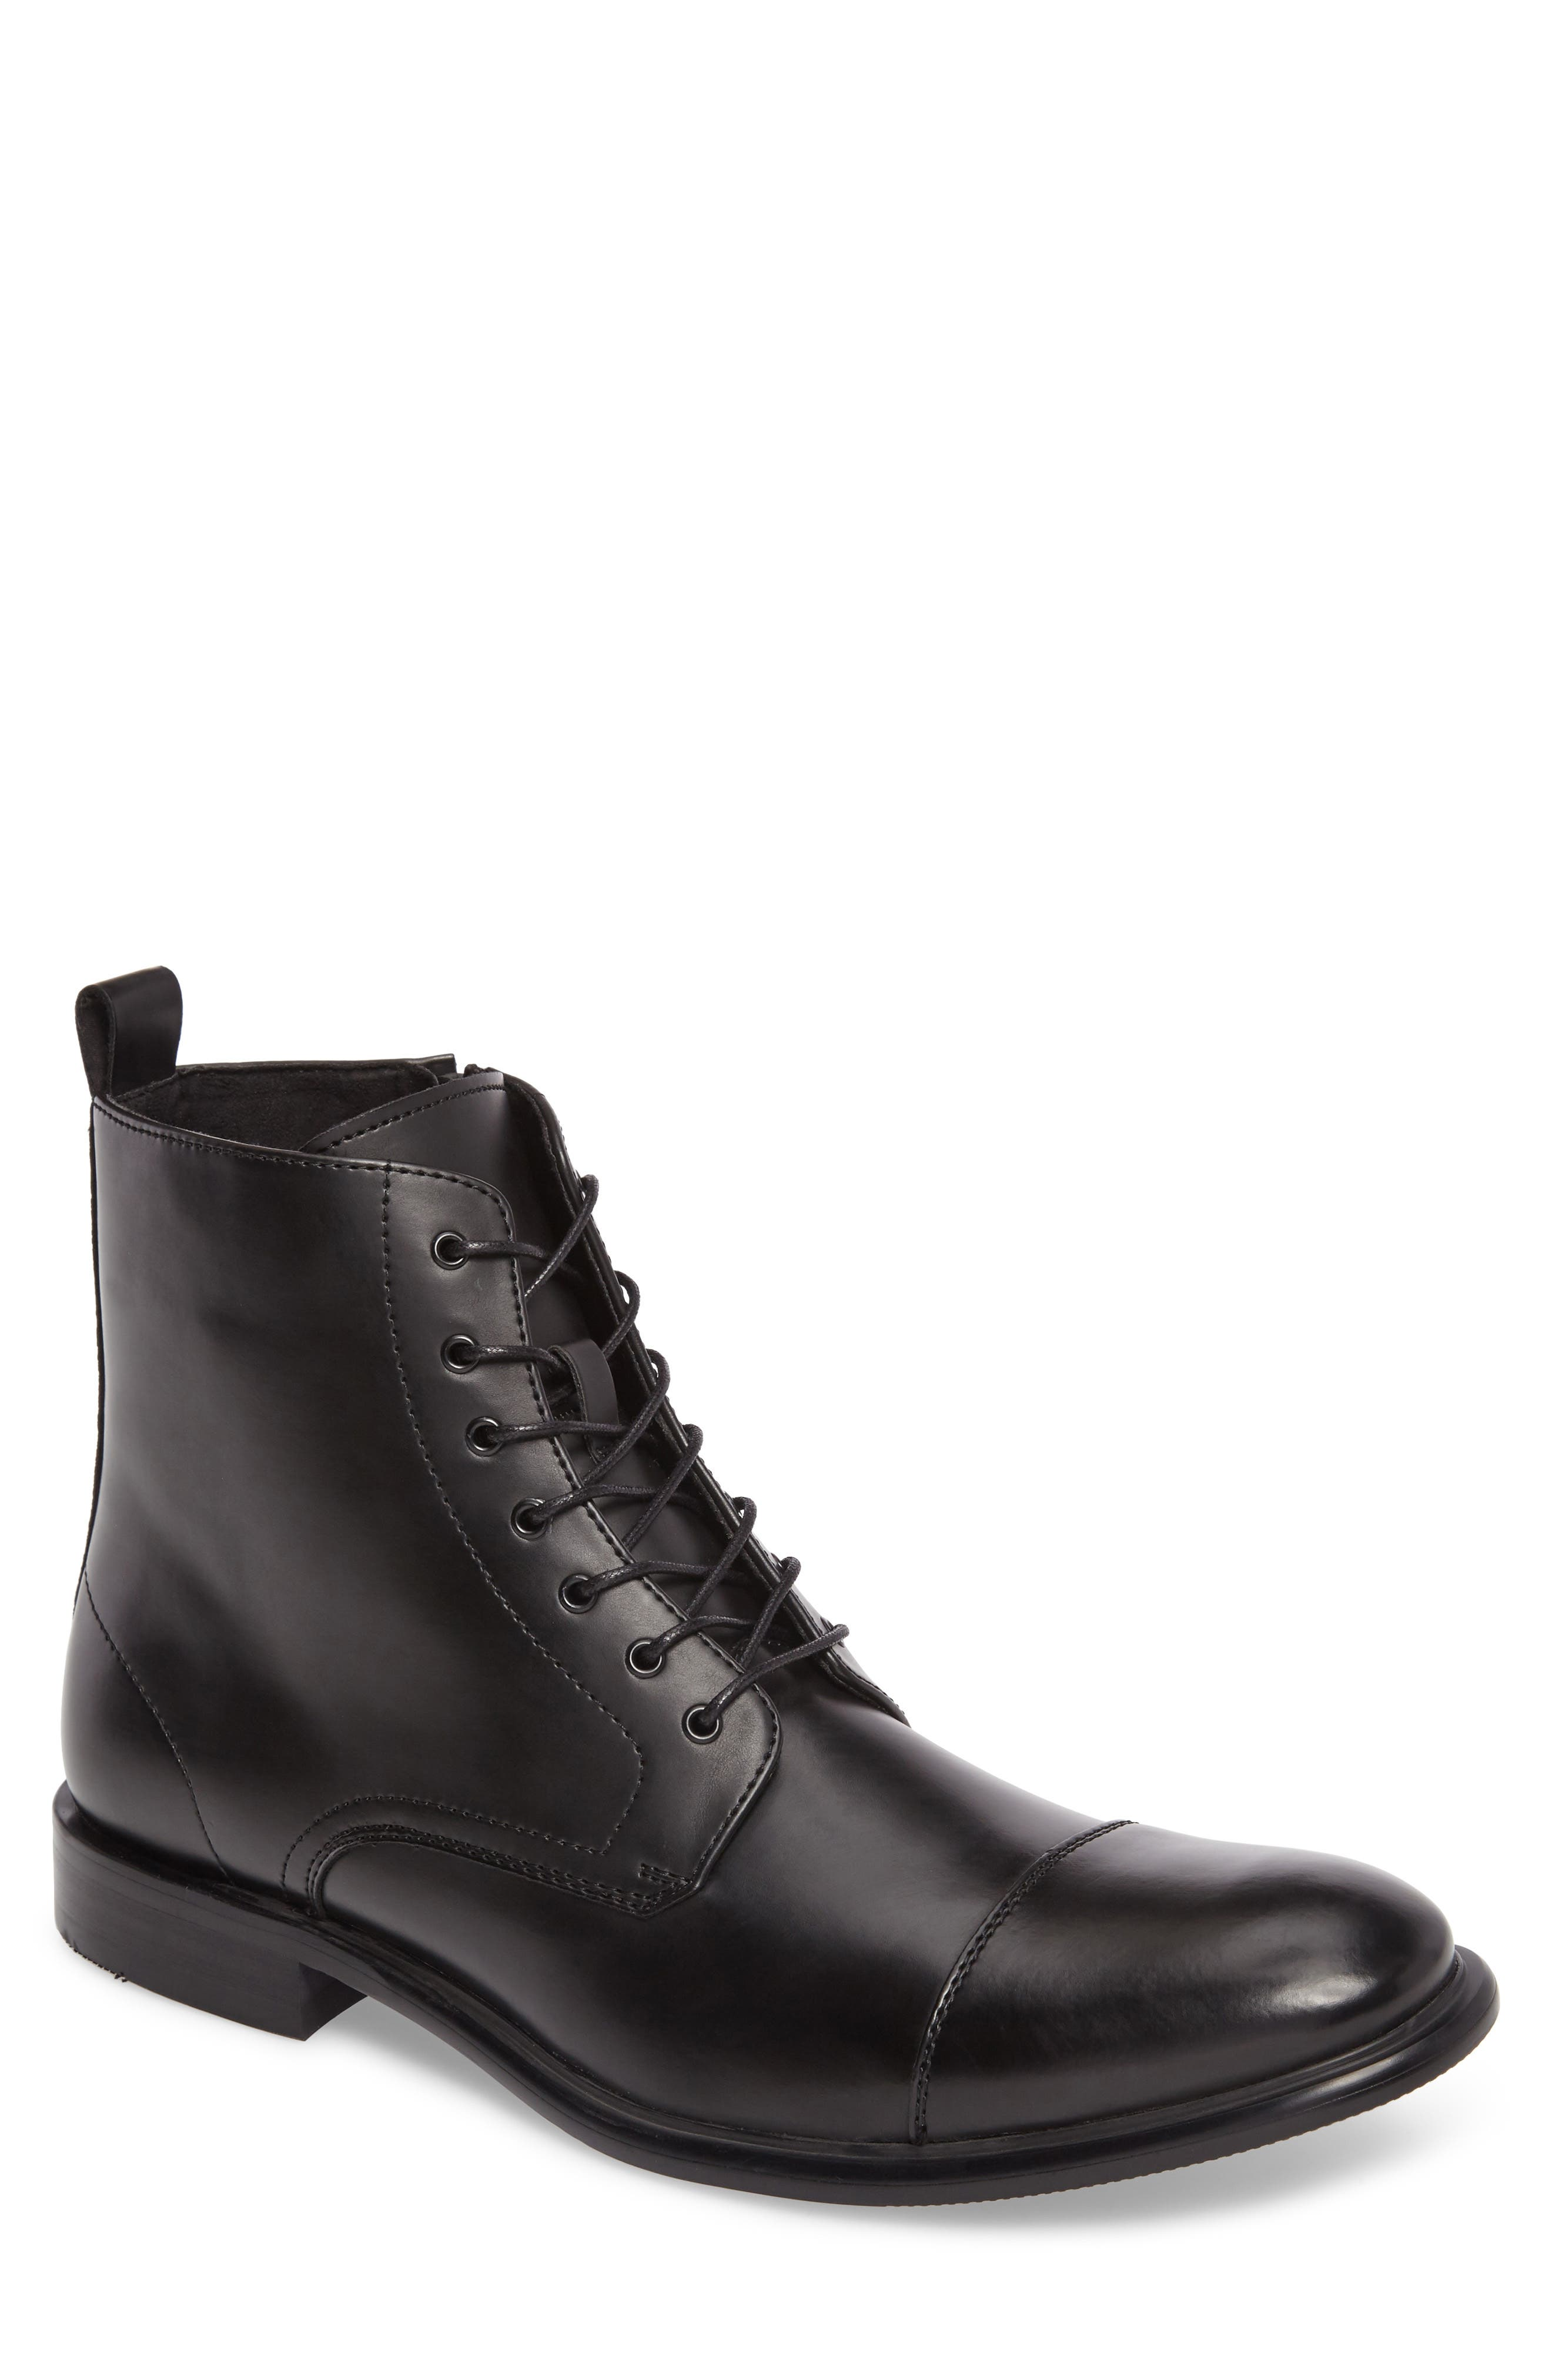 Alternate Image 1 Selected - Kenneth Cole Reaction Cap Toe Boot (Men)